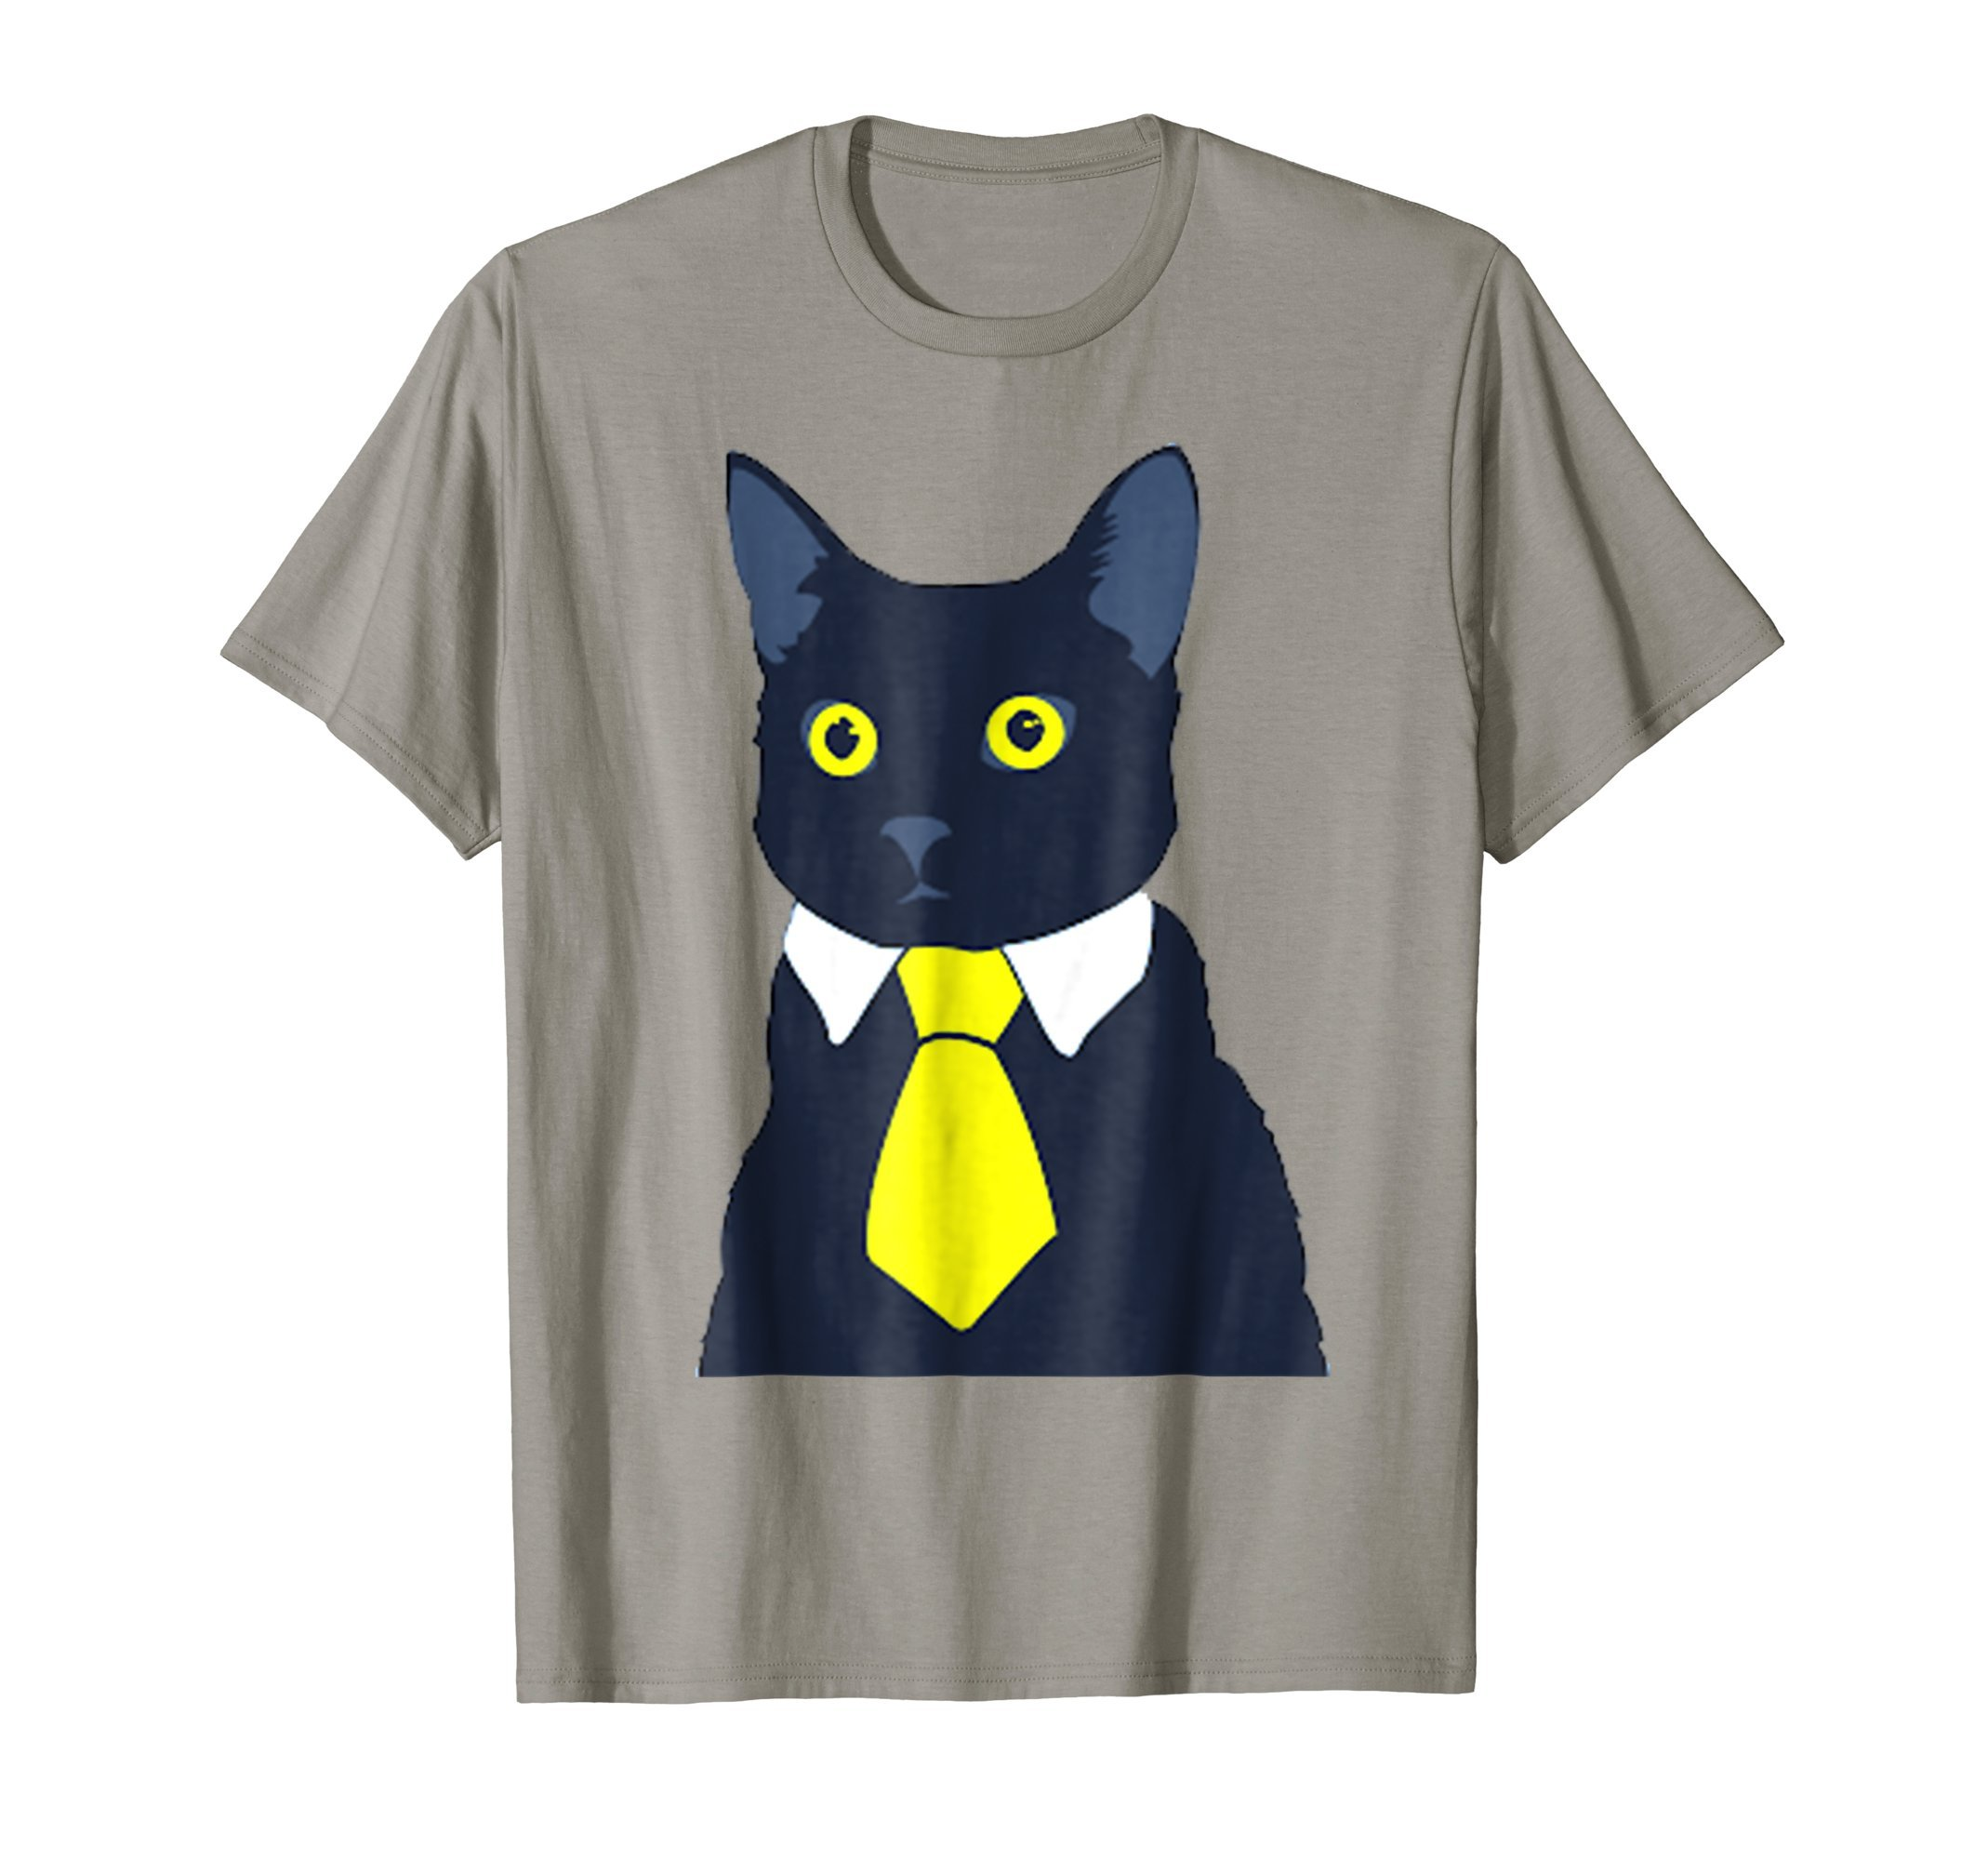 Funny Black Business Cat Kitten T-shirt Tee Tshirt by Funny Cat Lover Gift